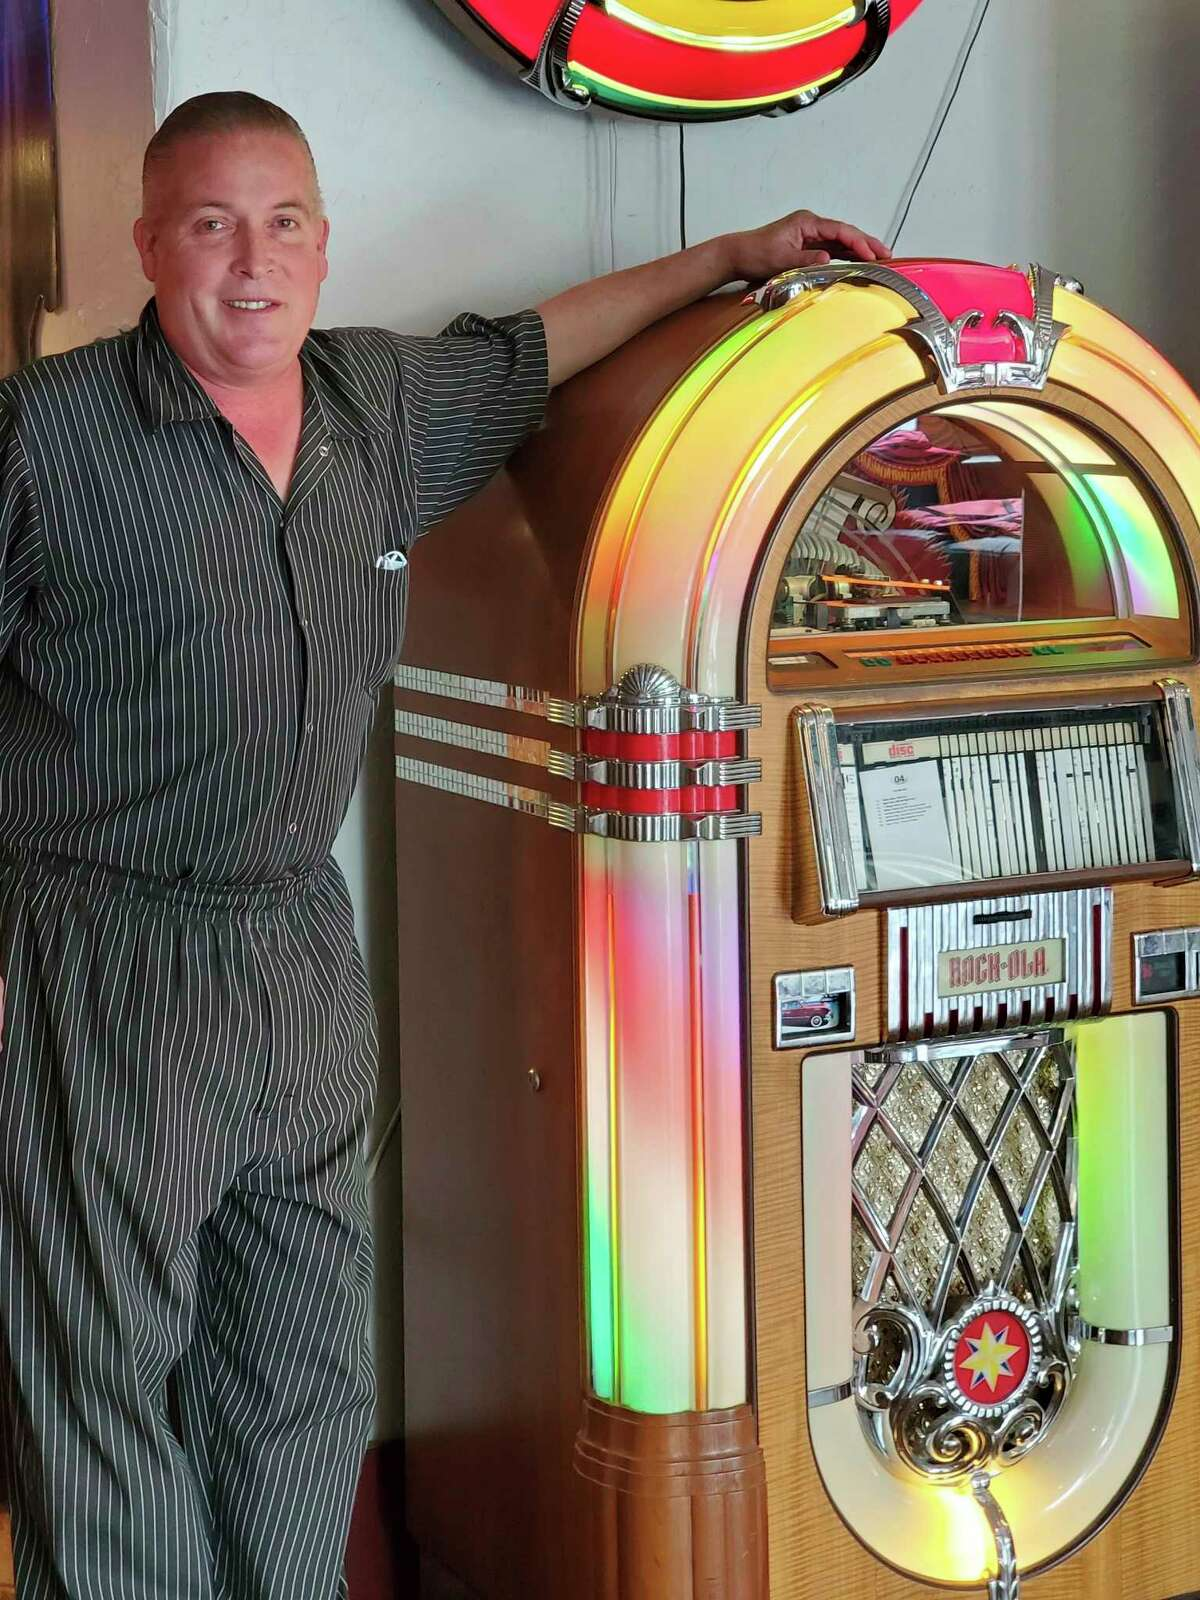 Kevin Wiley, who co-owns The Pasta House with his wife Helen, poses for a photo next to a classic jukebox in his restaurant. (Scott Nunn/Huron Daily Tribune)